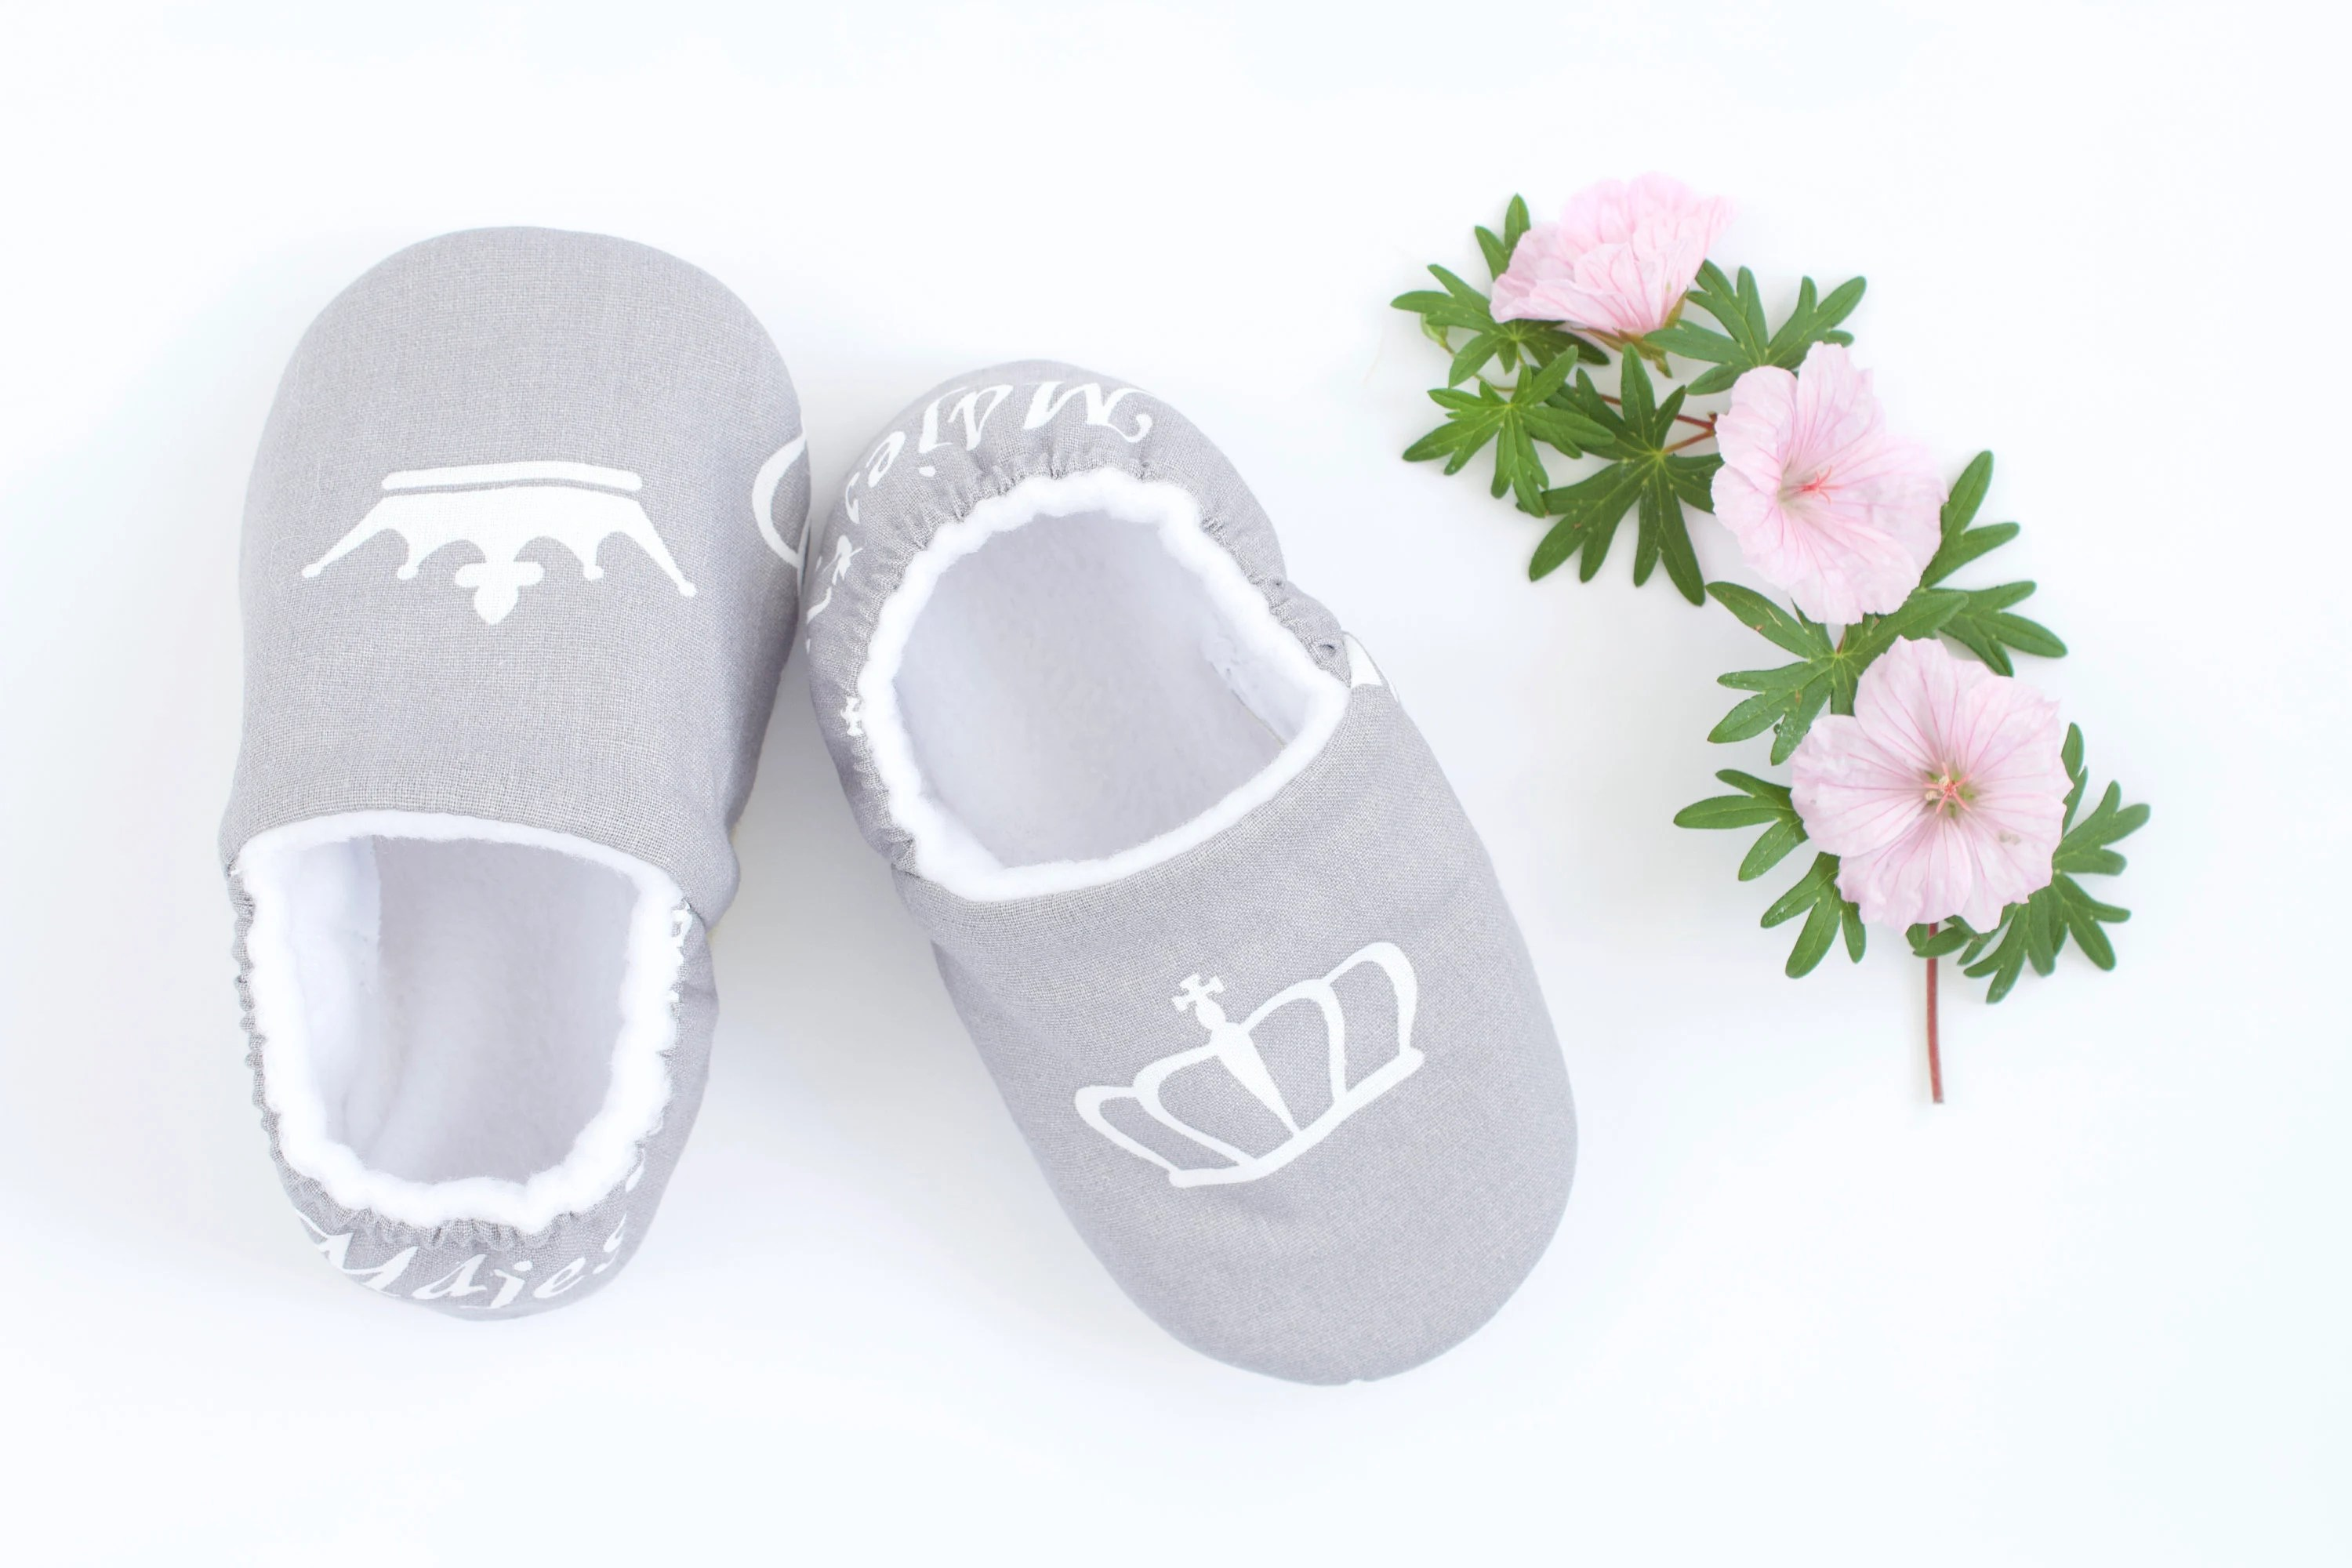 Baby Regal Baby Girl Shoes Baby Shoes Regal Baby Majesty Baby Baby Shower